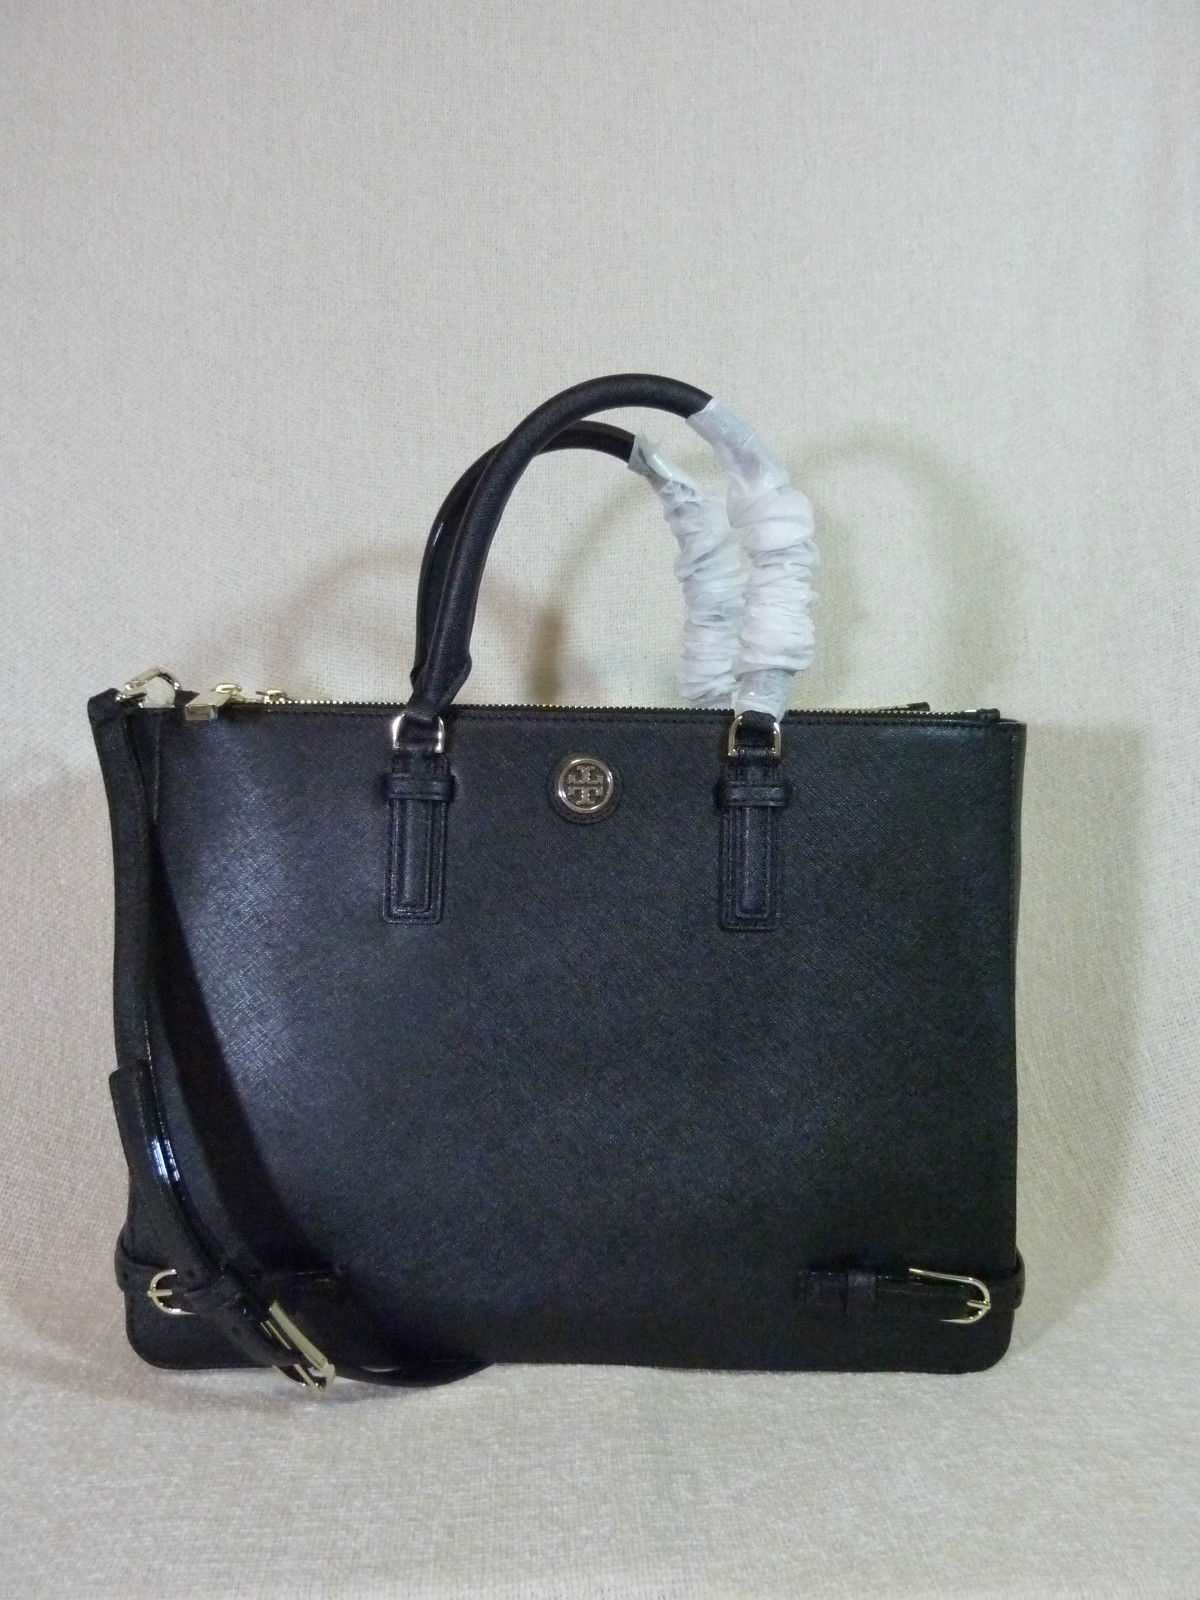 NWT Tory Burch Black Saffiano Leather Large Robinson Multi Tote - $595 image 3